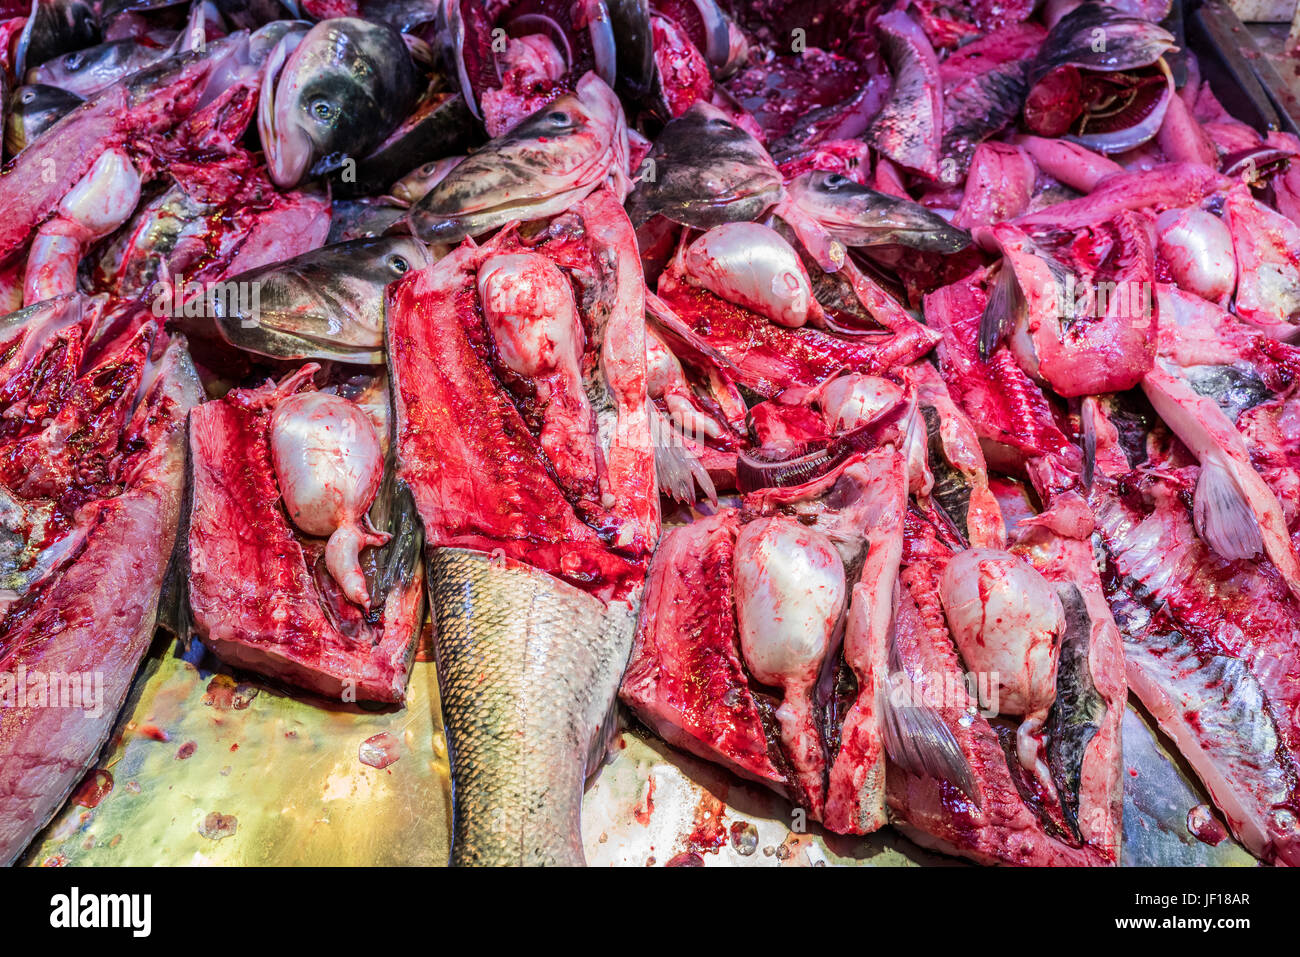 Gruesome close-up of a stack of gutted fish. - Stock Image